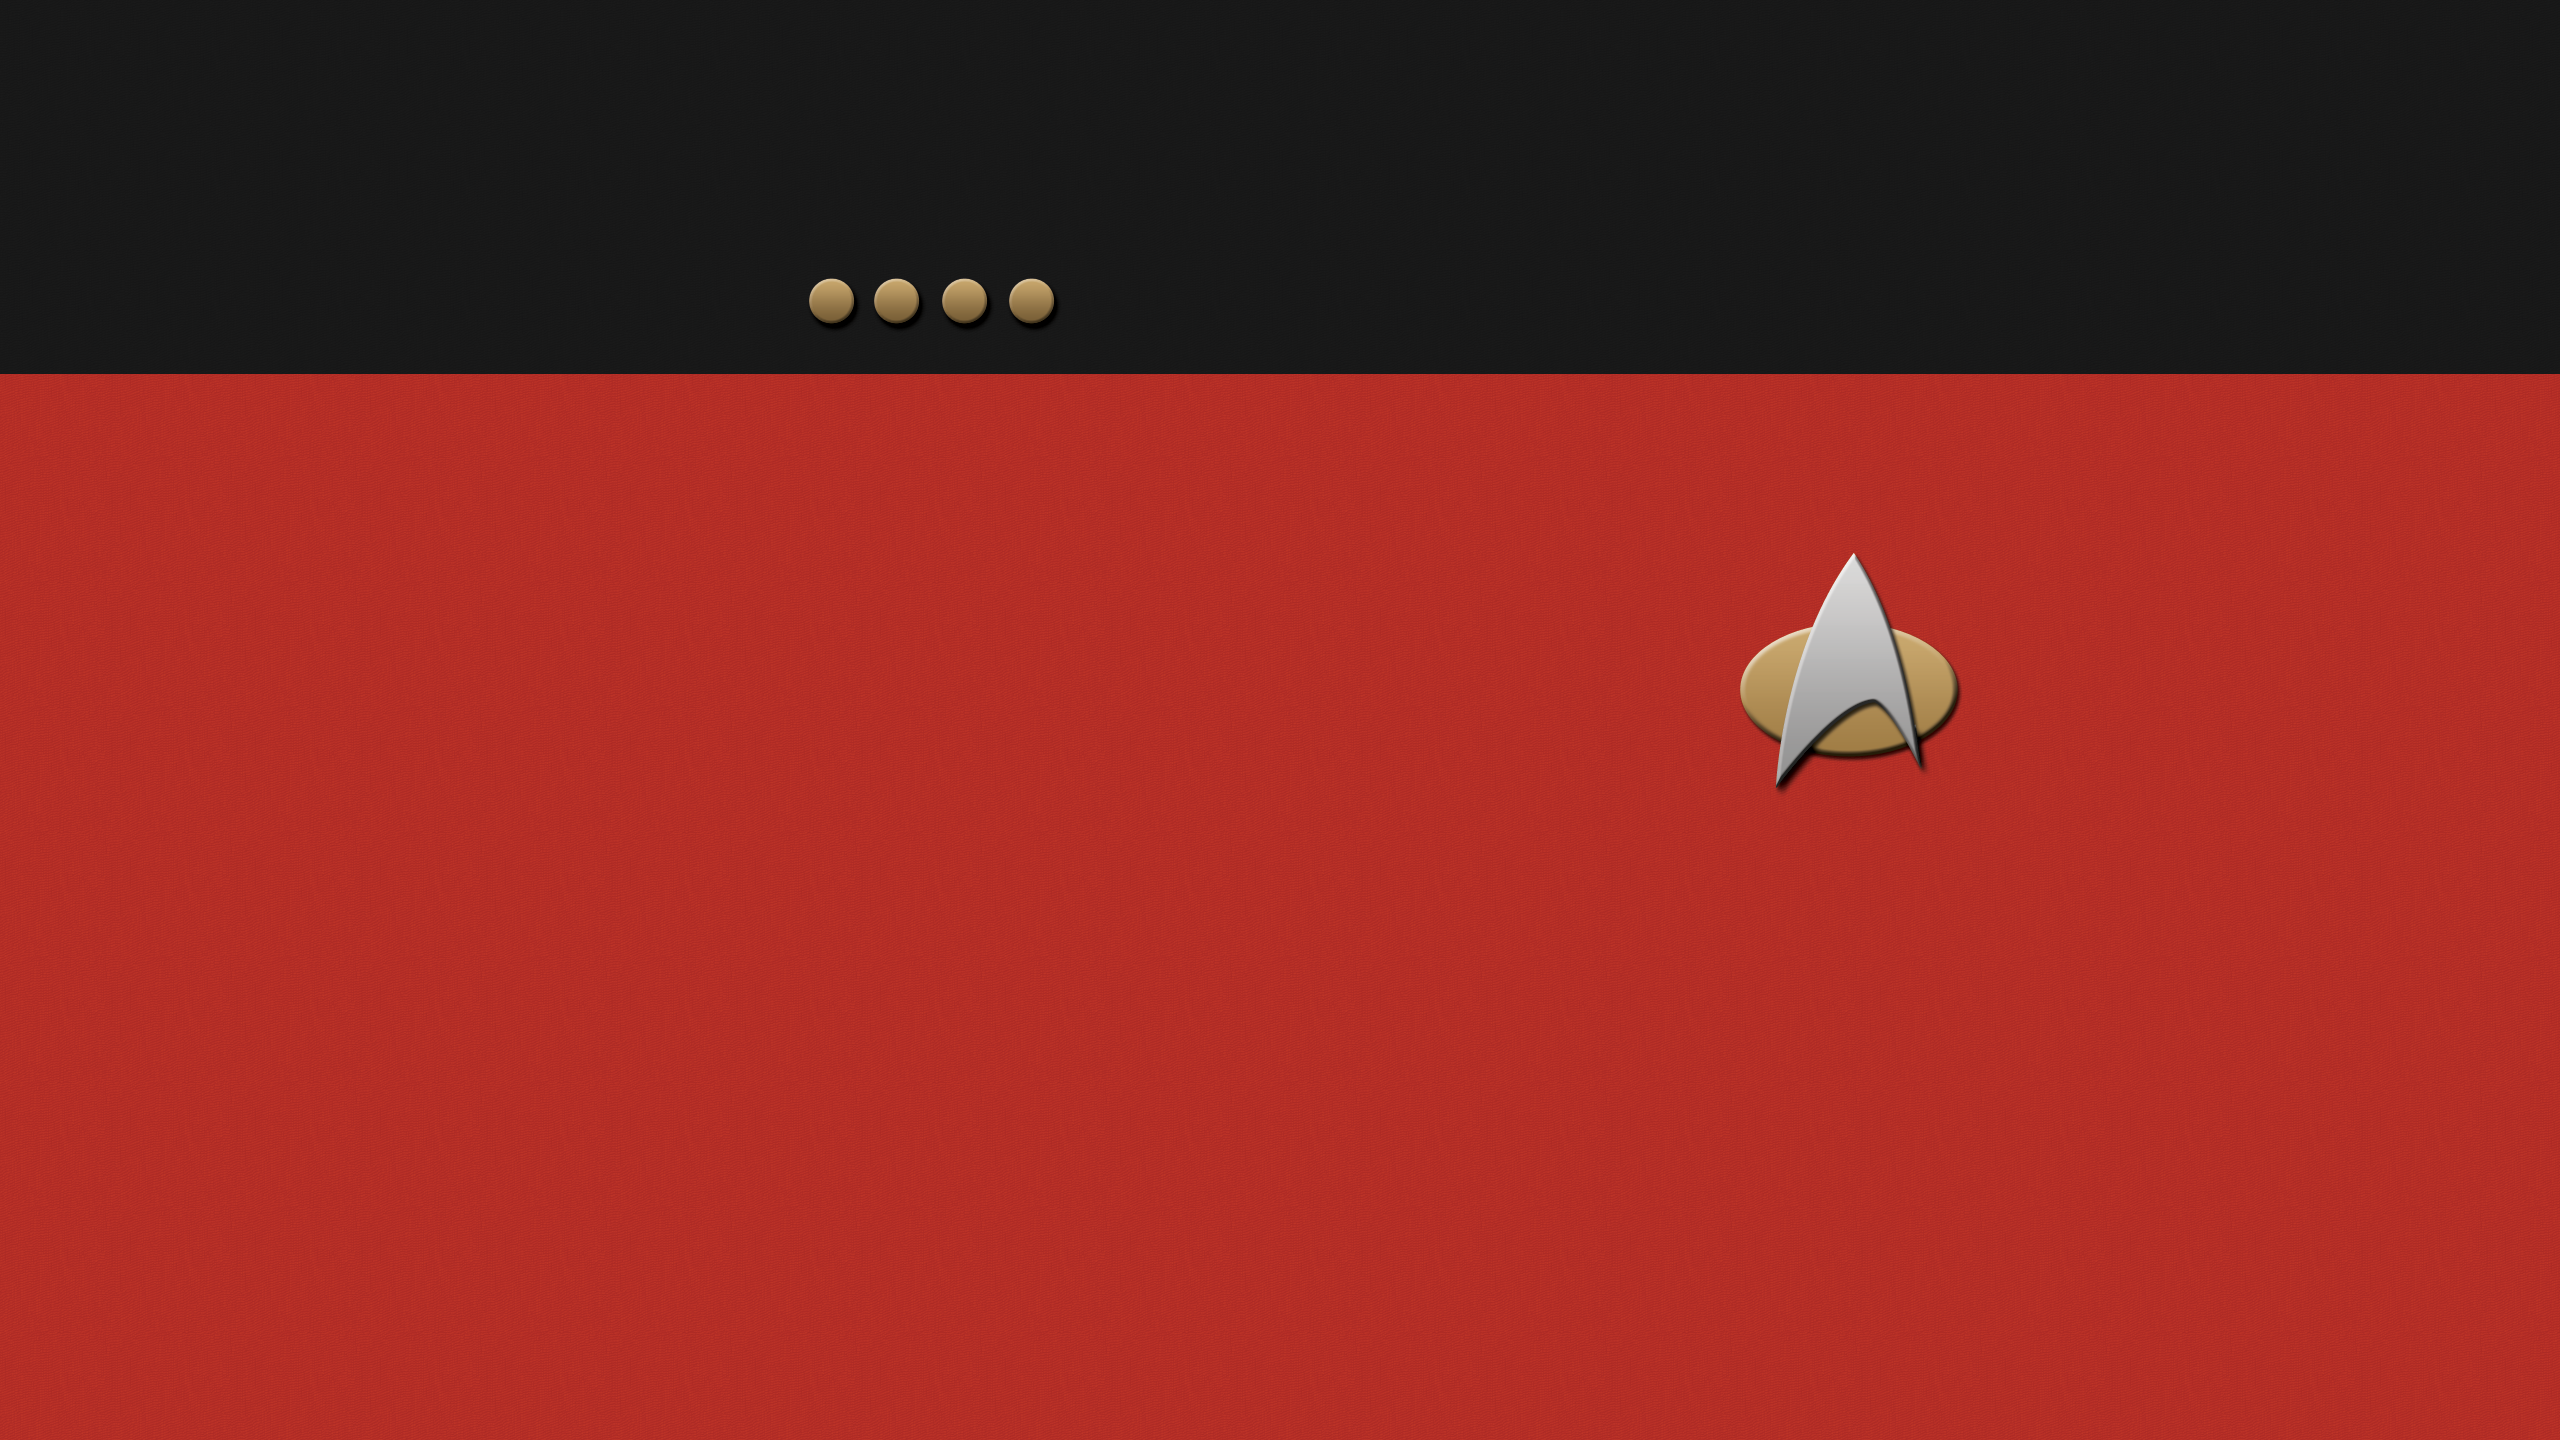 tng-picard-2560x1440virtualalex on deviantart